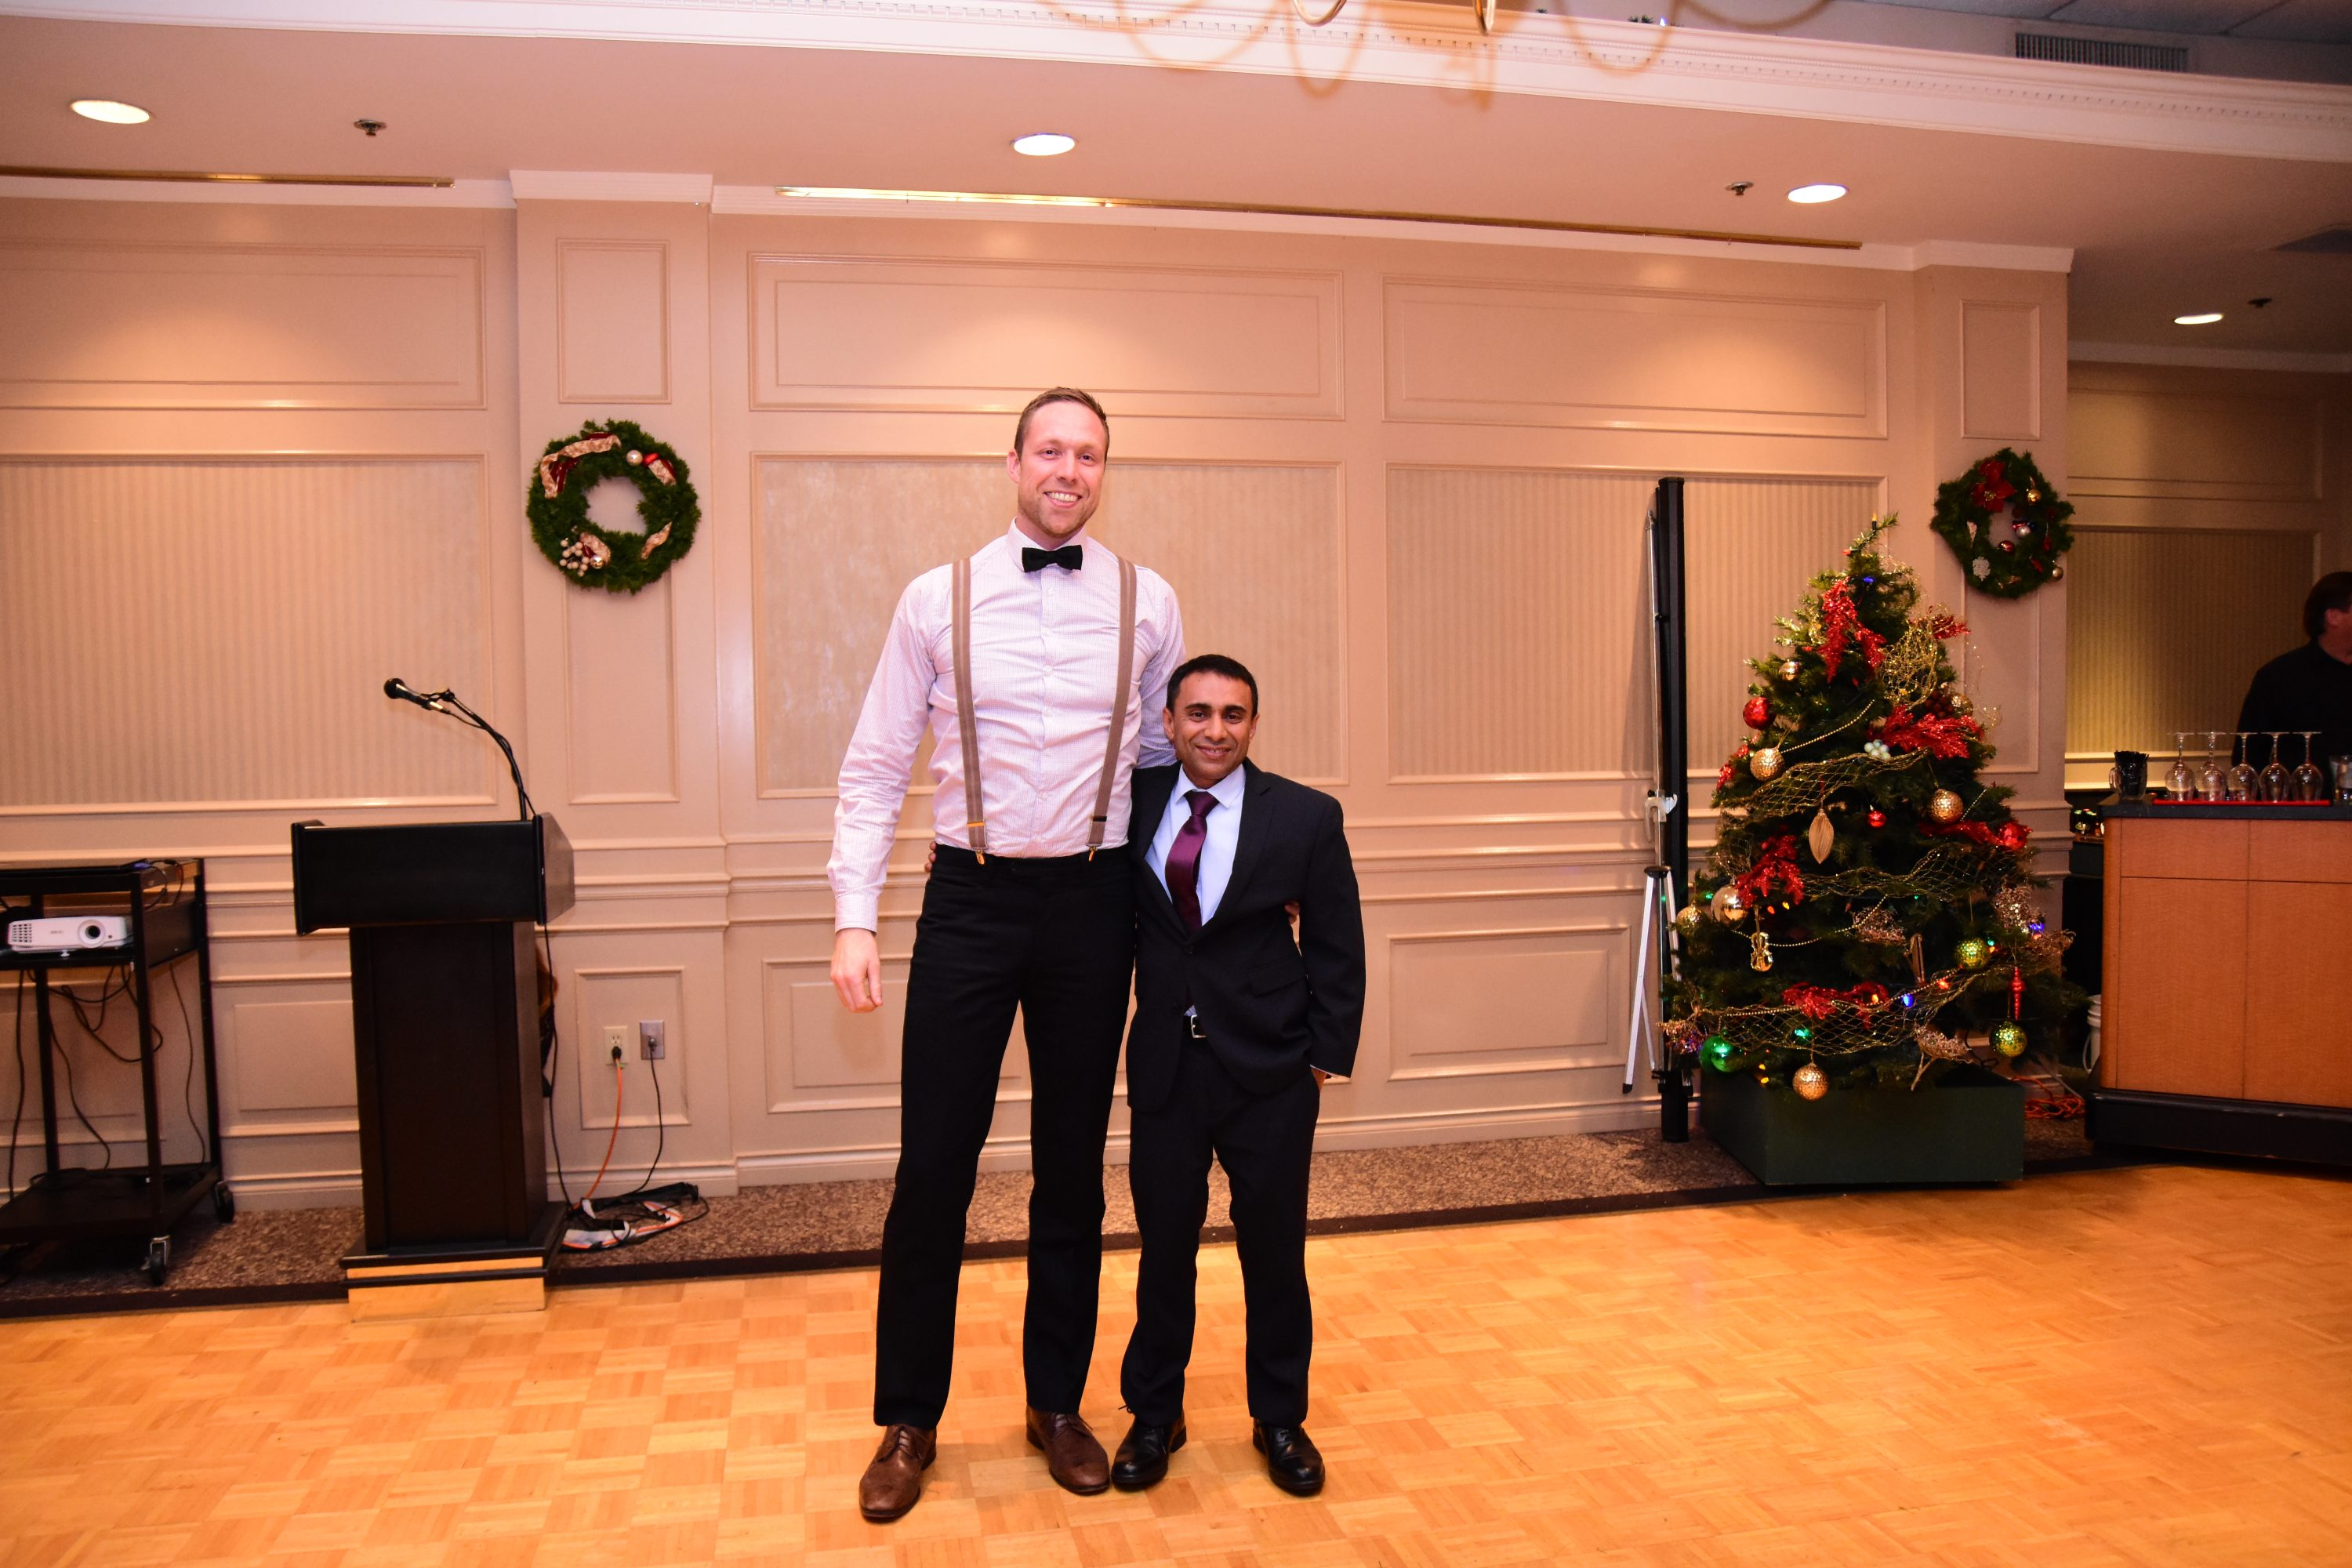 MEL and MHLP Graduation Gala: MEL in Green Bio-Products Graduate with Assistant Director Dr. Nuwan Sella Kapu